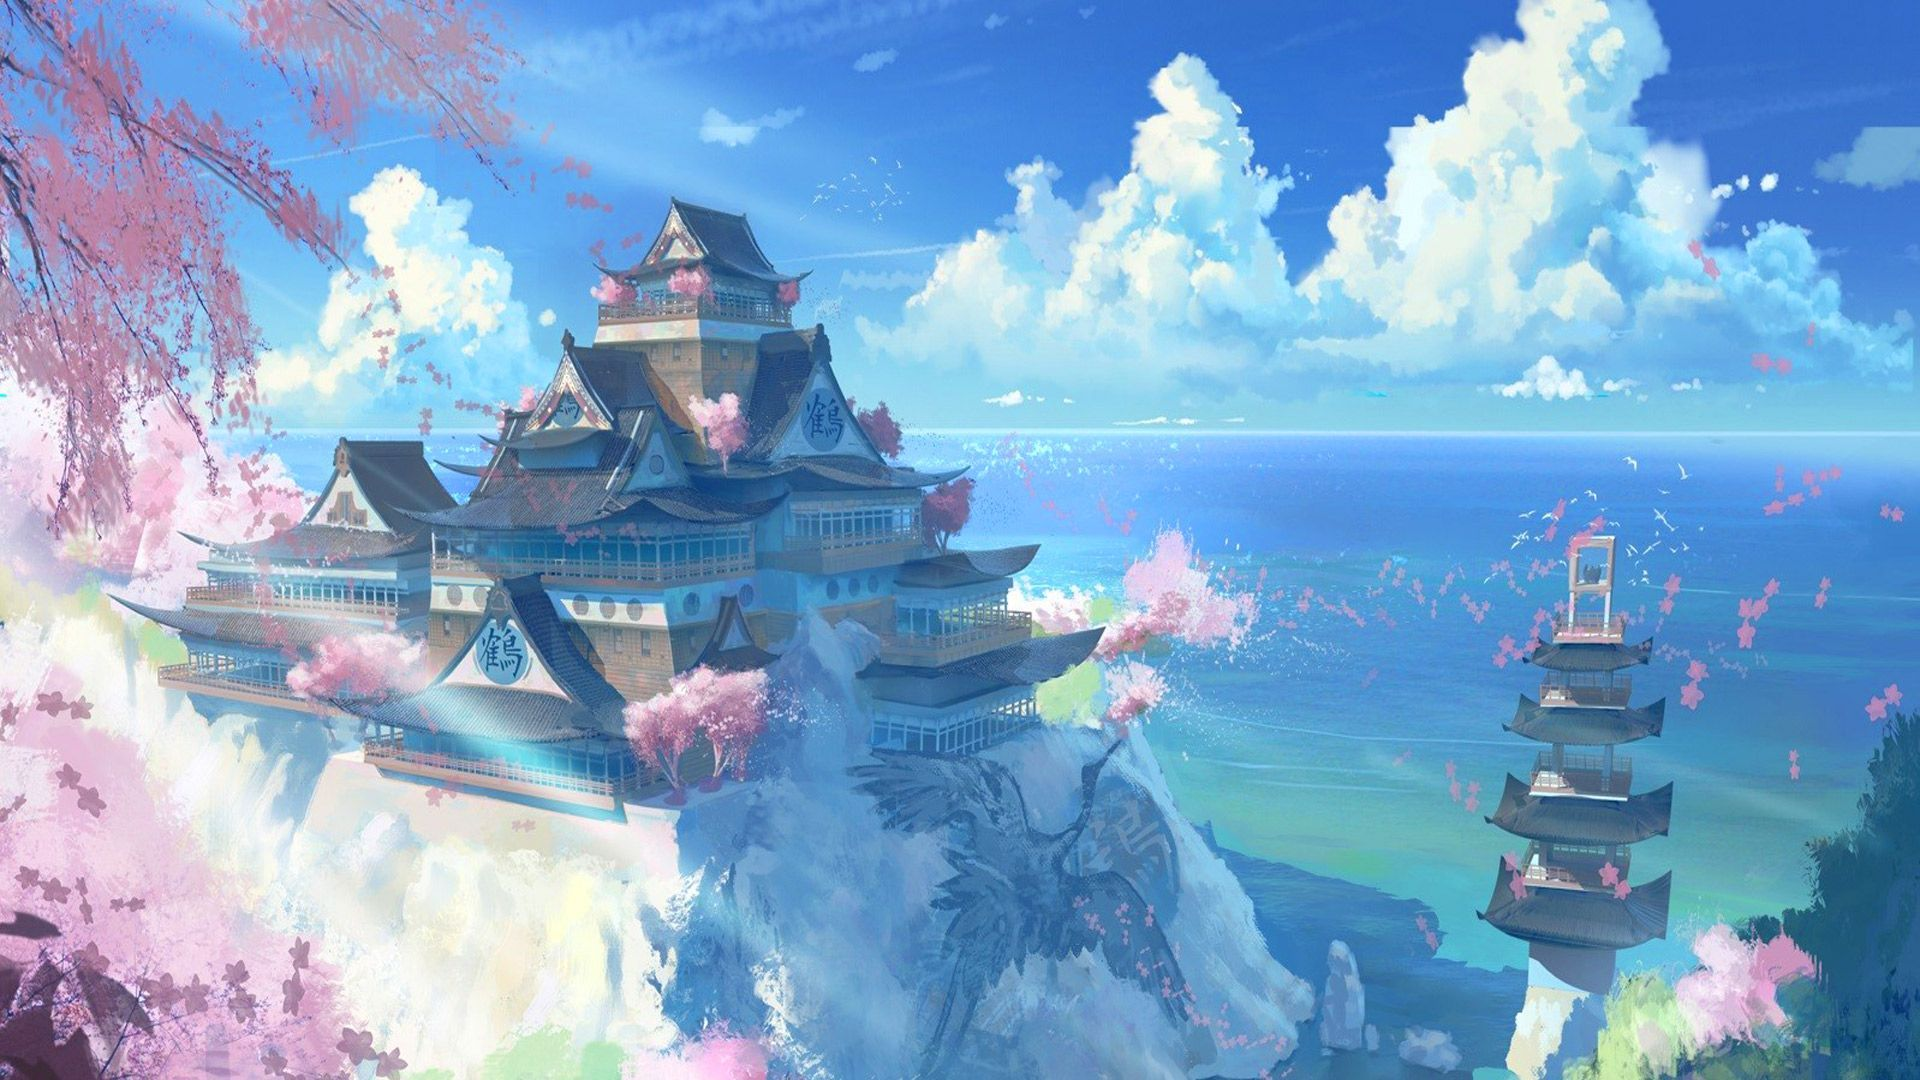 Anime Landscape Wallpapers   Top Anime Landscape Backgrounds 1920x1080